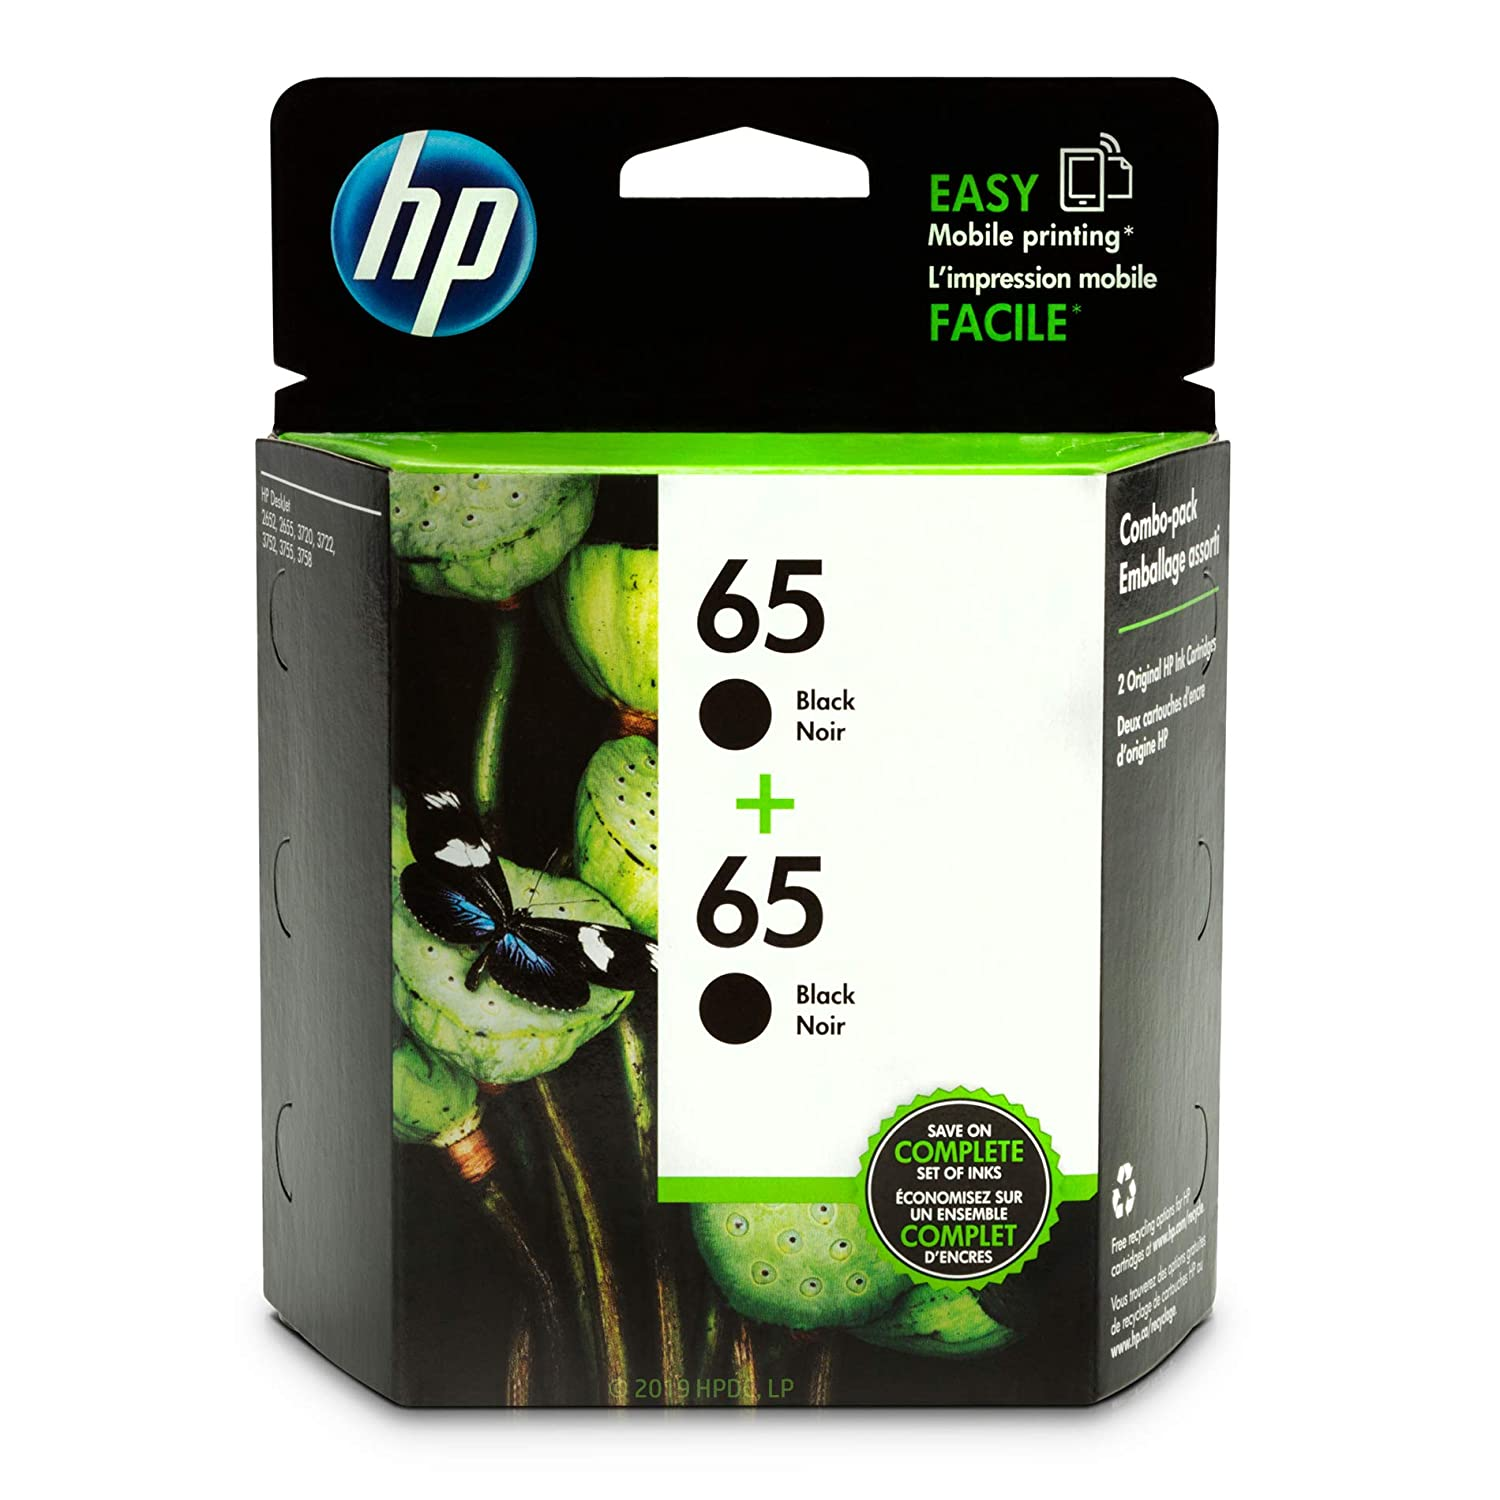 HP 65 Black Ink Cartridge (N9K02AN), 2 Cartridges (1VU22AN) for HP DeskJet 2624 2652 2655 3722 3752 3755 3758